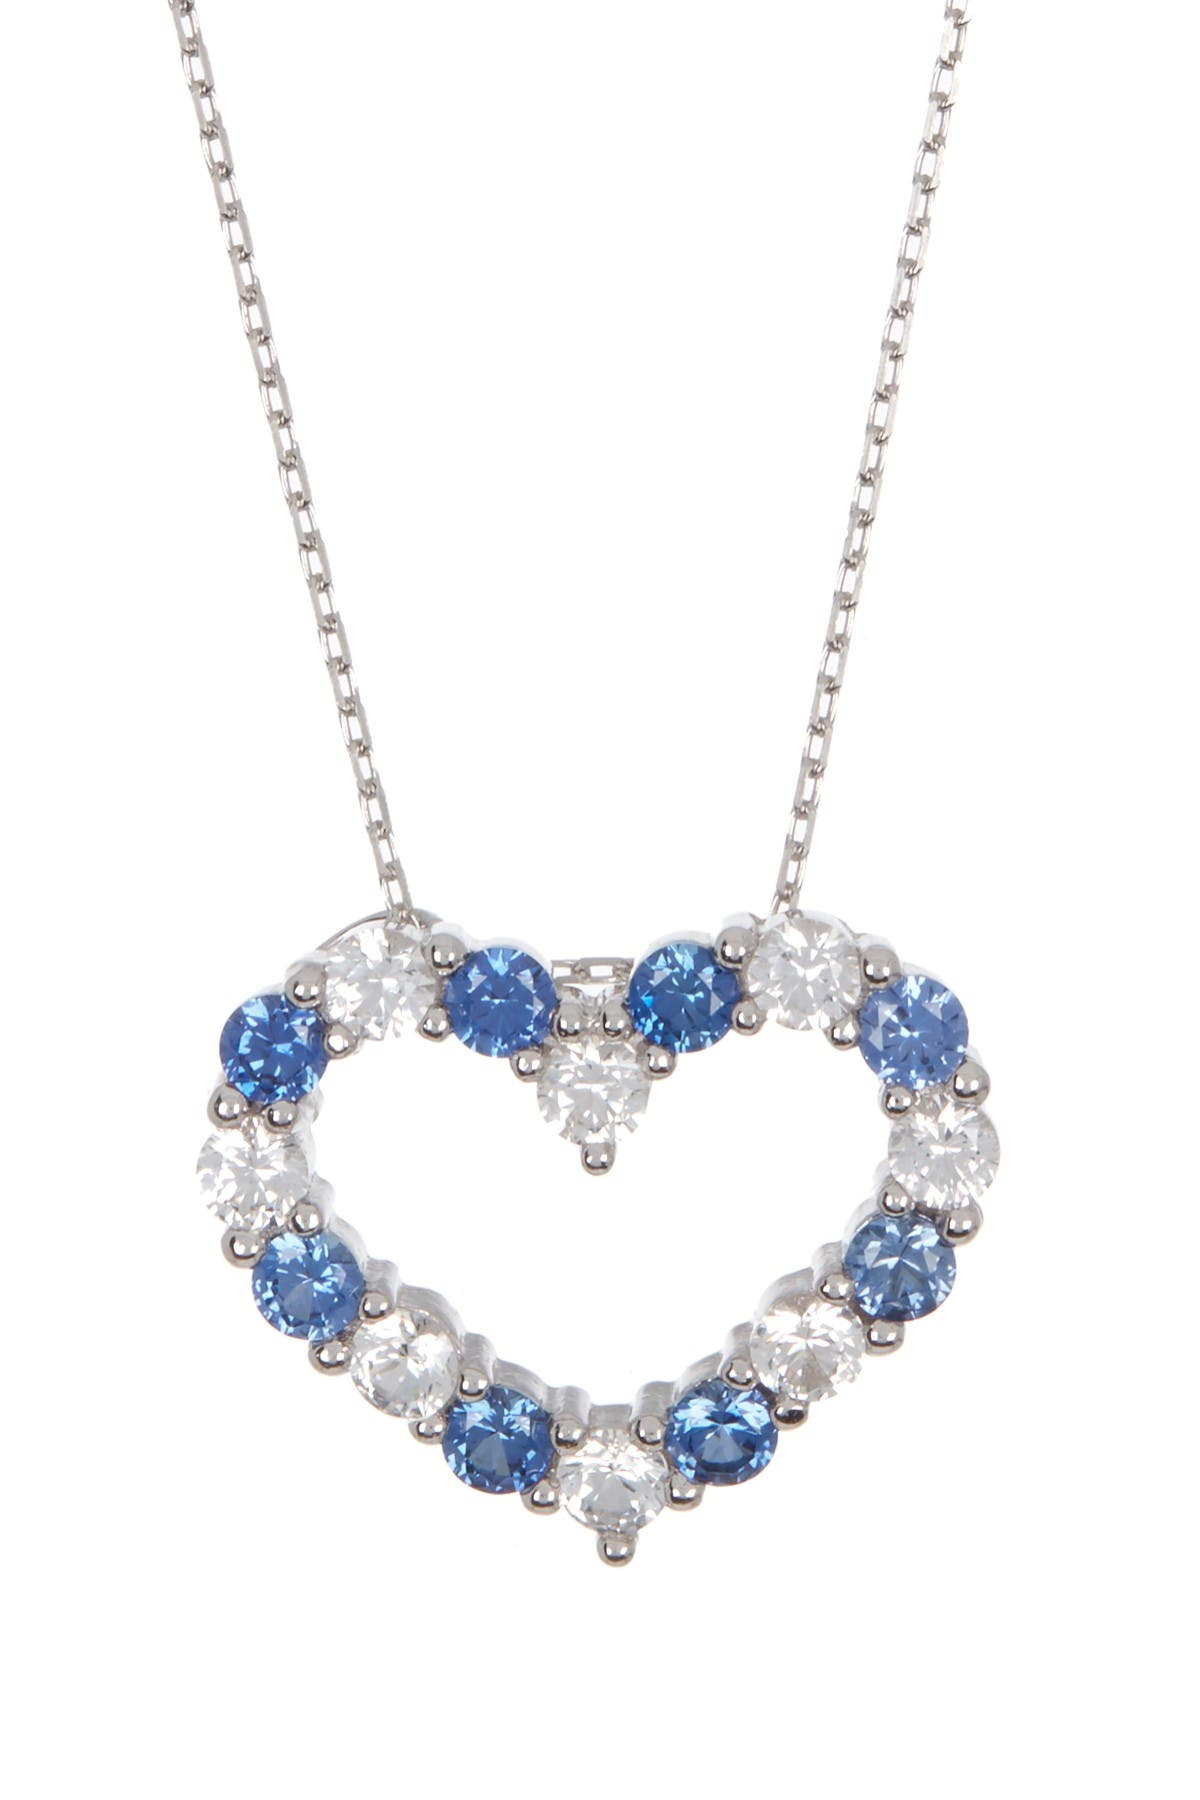 Image of Suzy Levian Sterling Silver Sapphire & Diamond Accent Open Heart Pendant Necklace